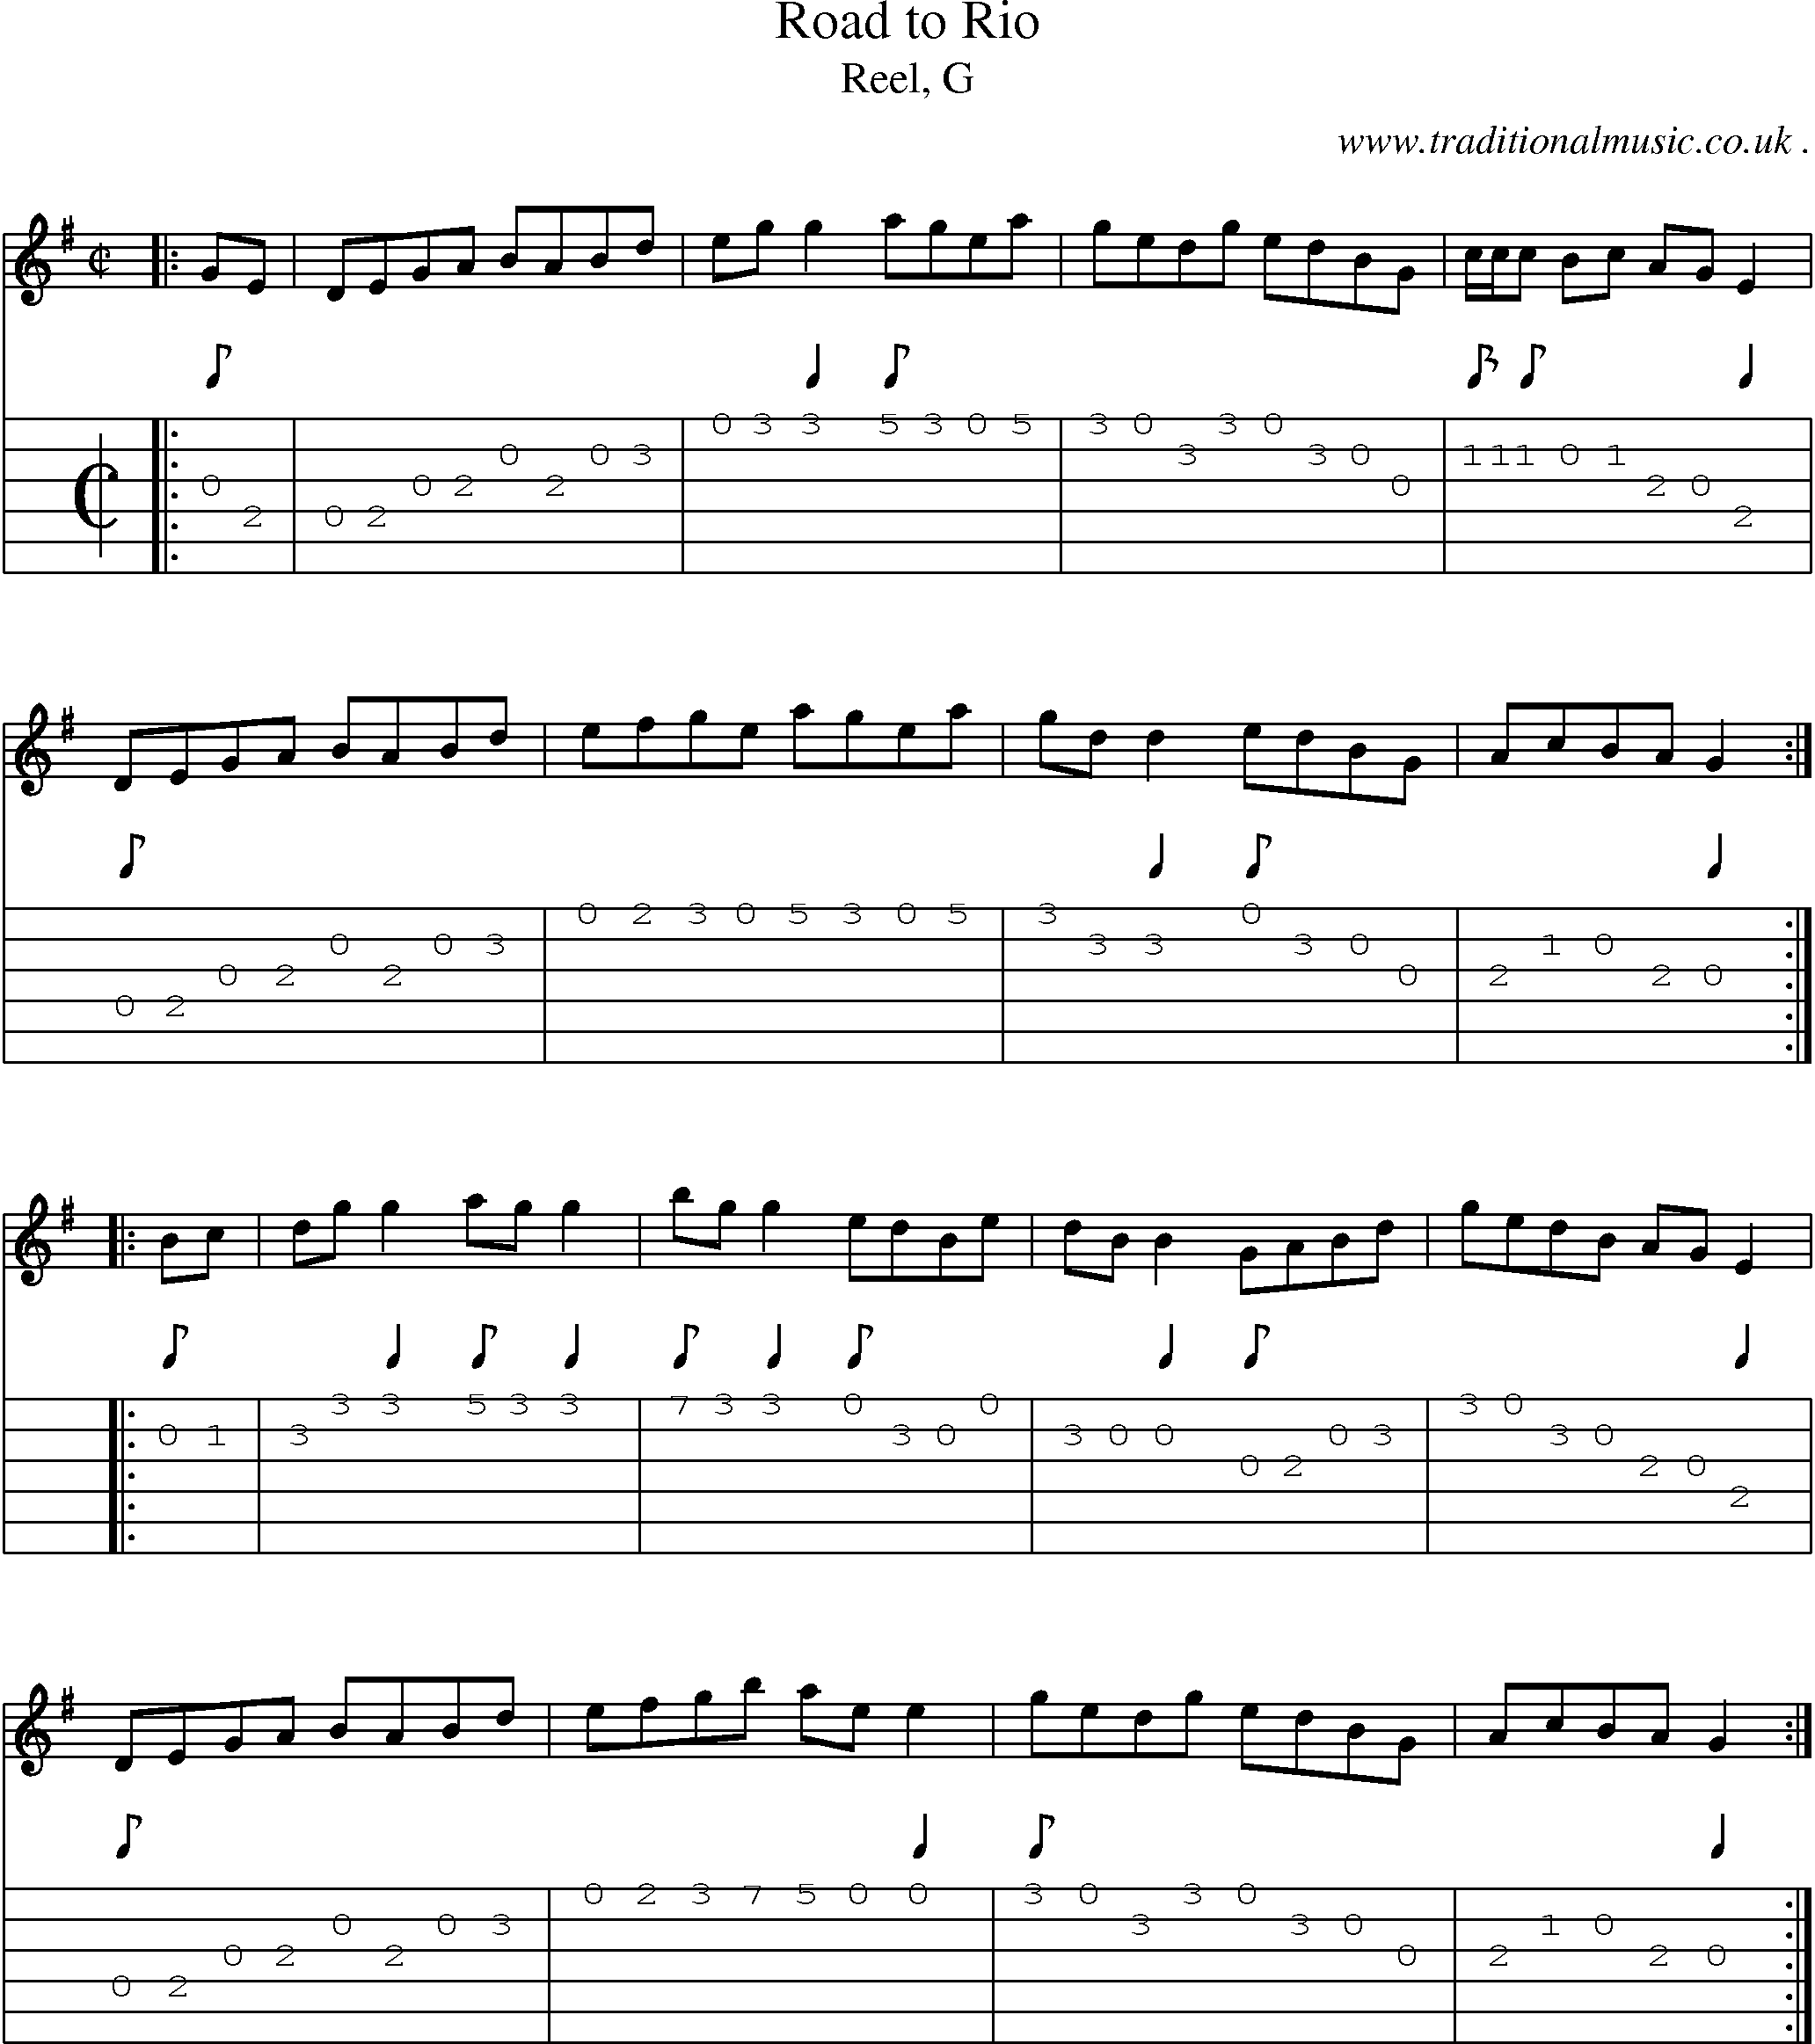 Sheet-music score, Chords and Guitar Tabs for Road To Rio